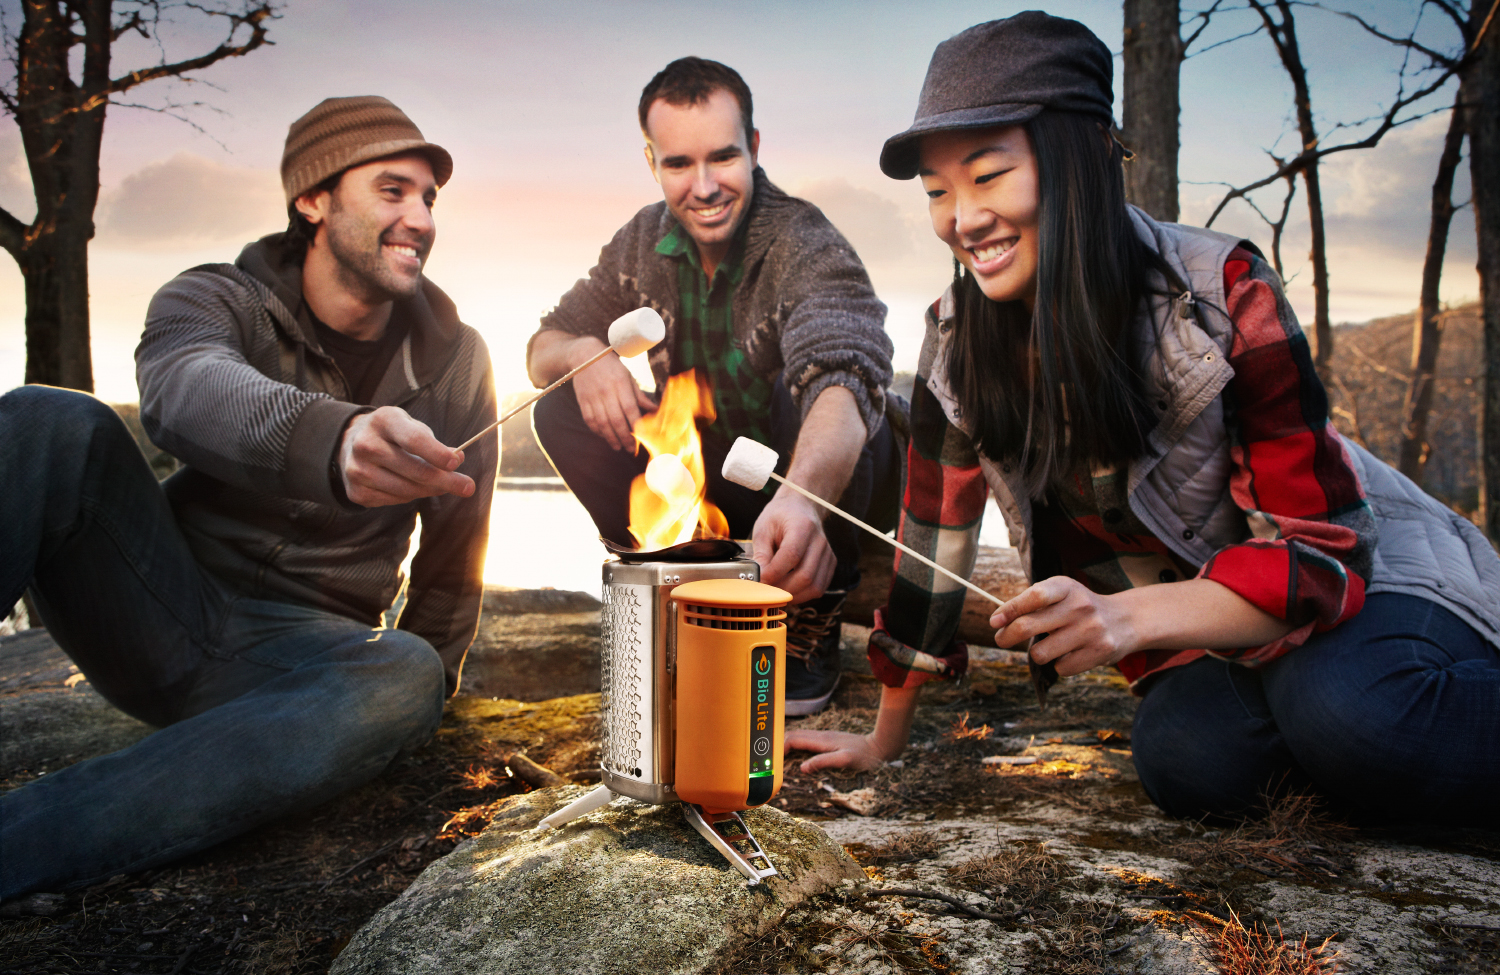 Never go off the grid with the BioLite CampStove.